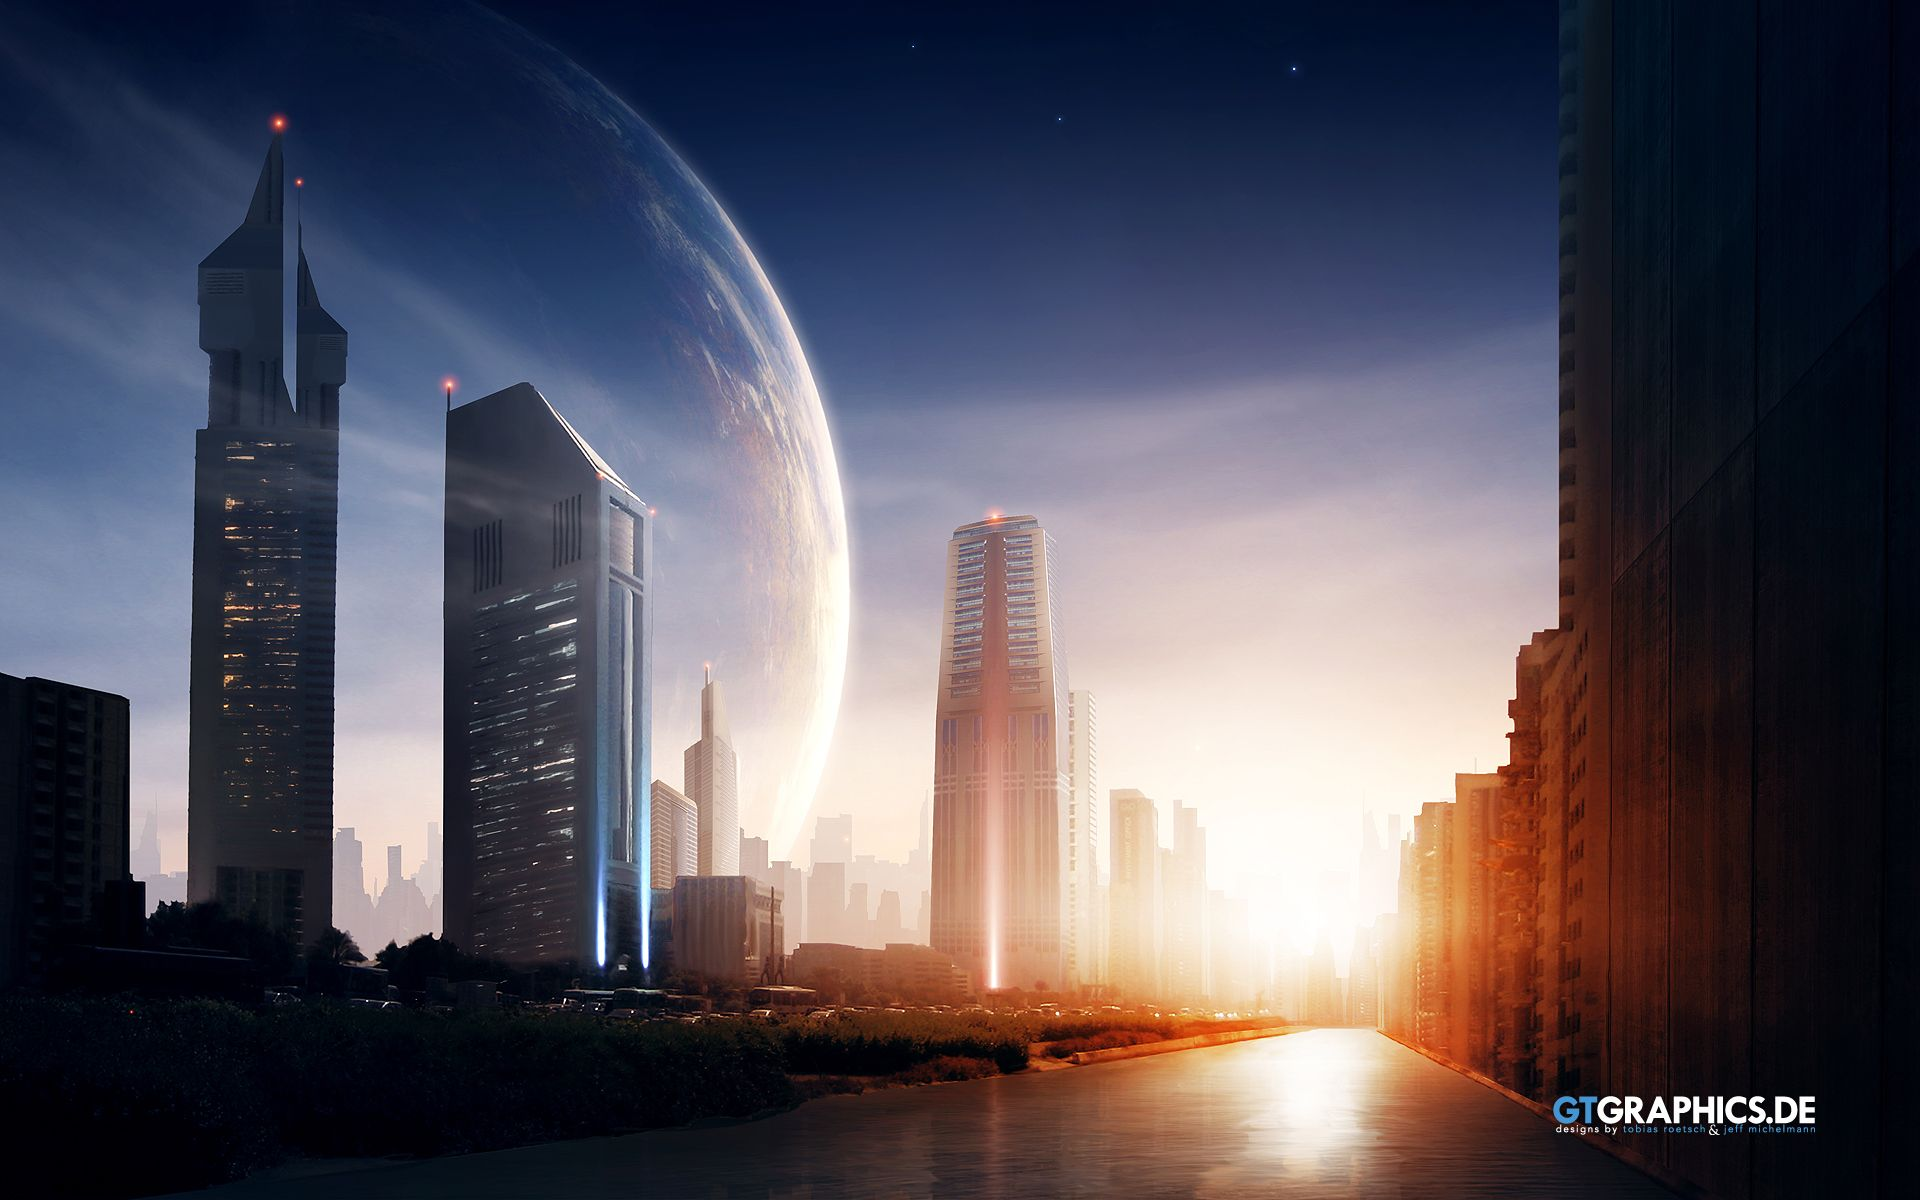 Futuristic Cities Planets In The Sky Sunset Hd Wallpapers